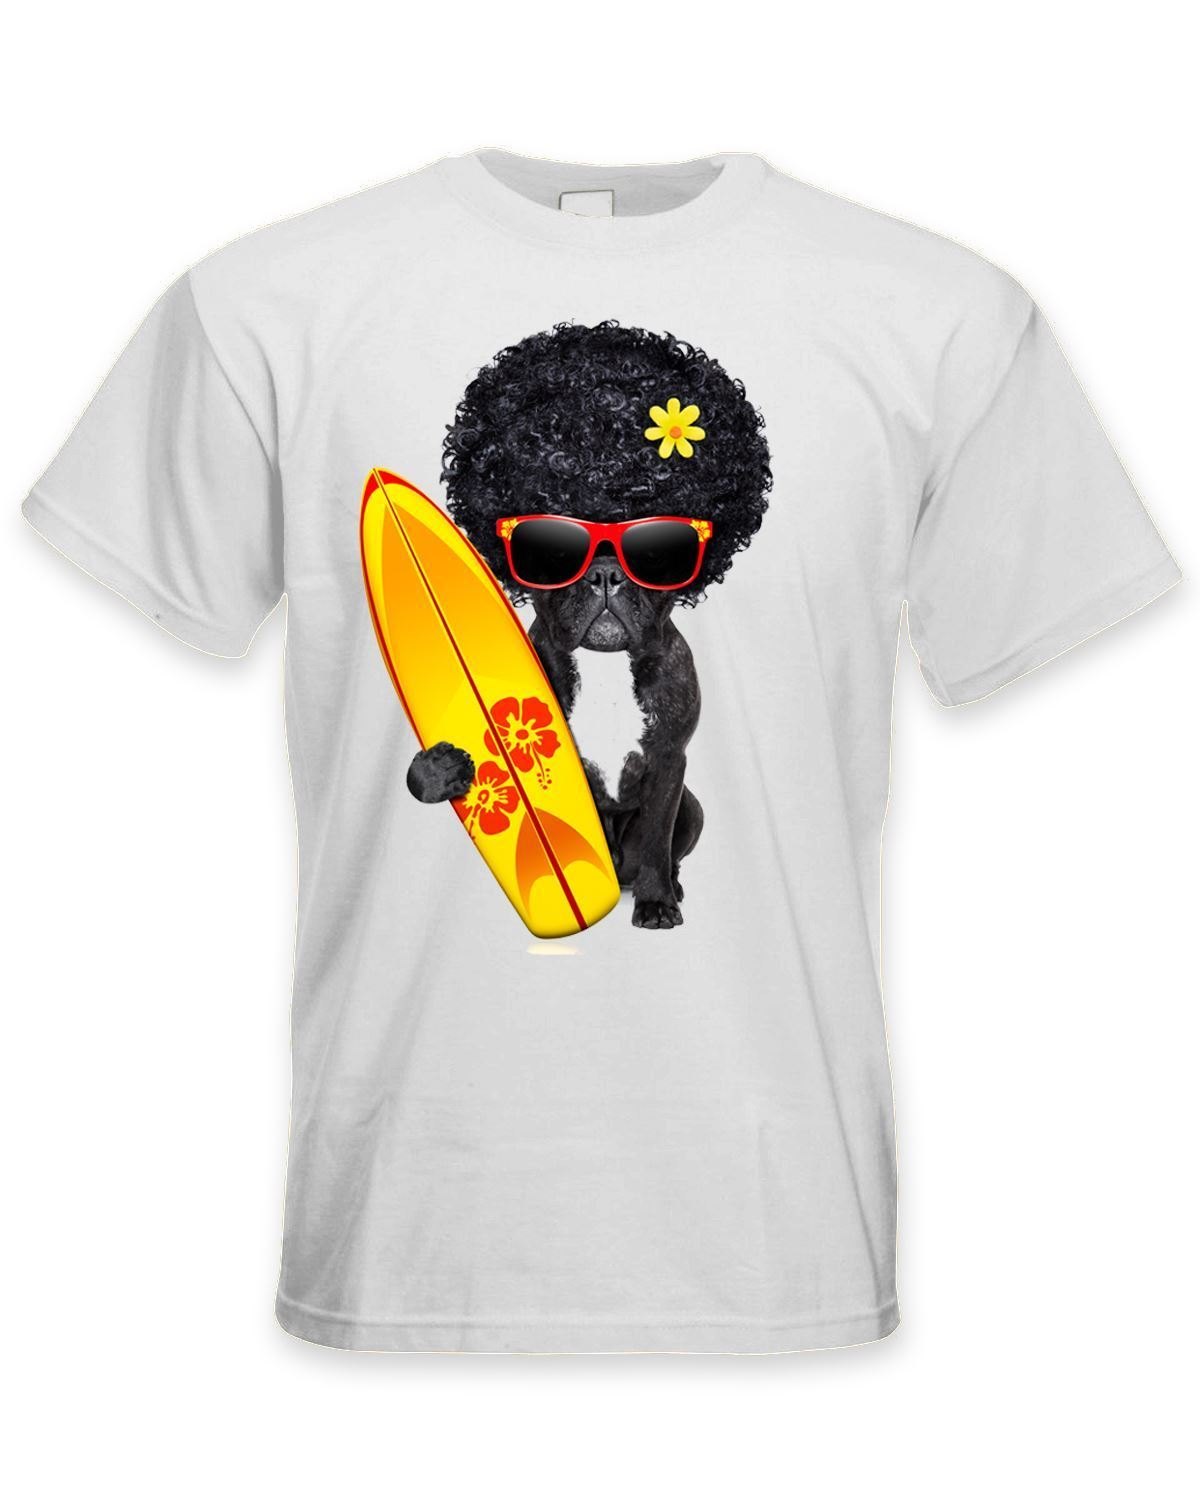 French Bulldog Surfer With Afro Hair Mens T-Shirt - Funny Pet Bull Dog Print T-Shirt Summer Casual top tee